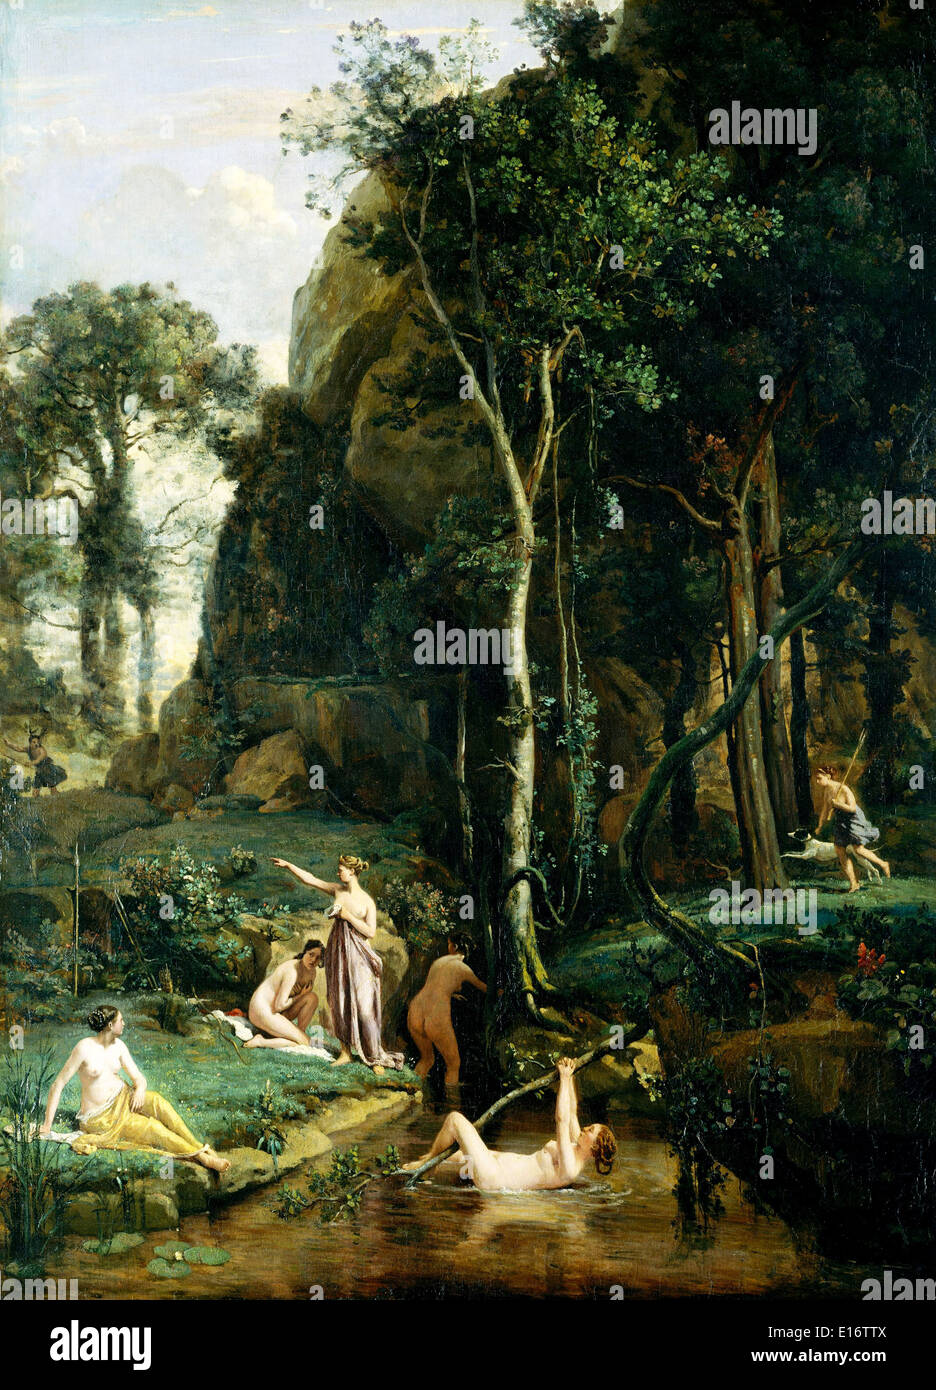 Diana and Actaeon Diana Surprised in Her Bath by Camille Corot,1836 - Stock Image